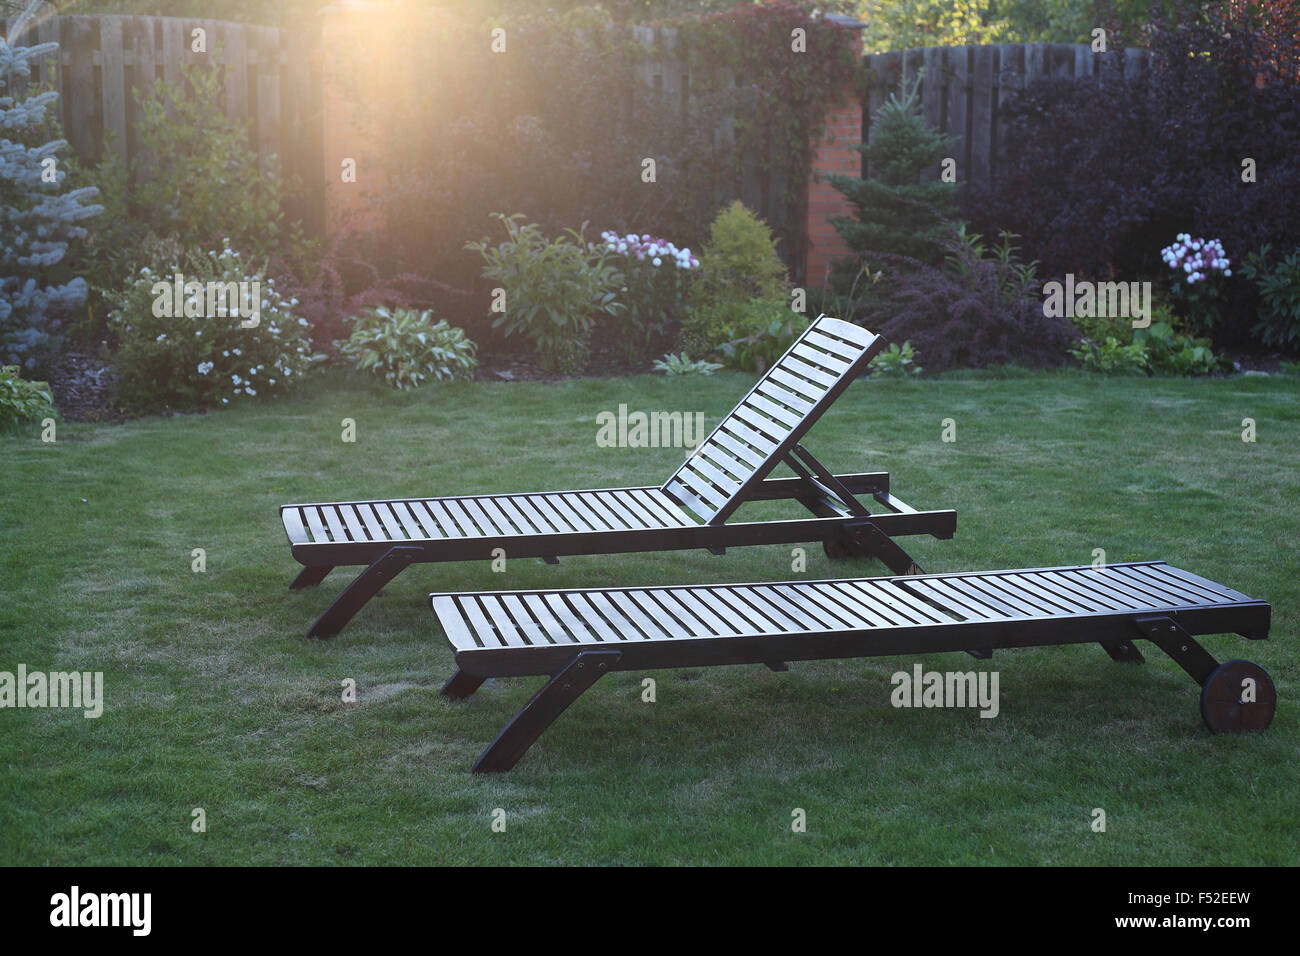 Two wooden chaise lounges in beams of the setting sun. - Stock Image